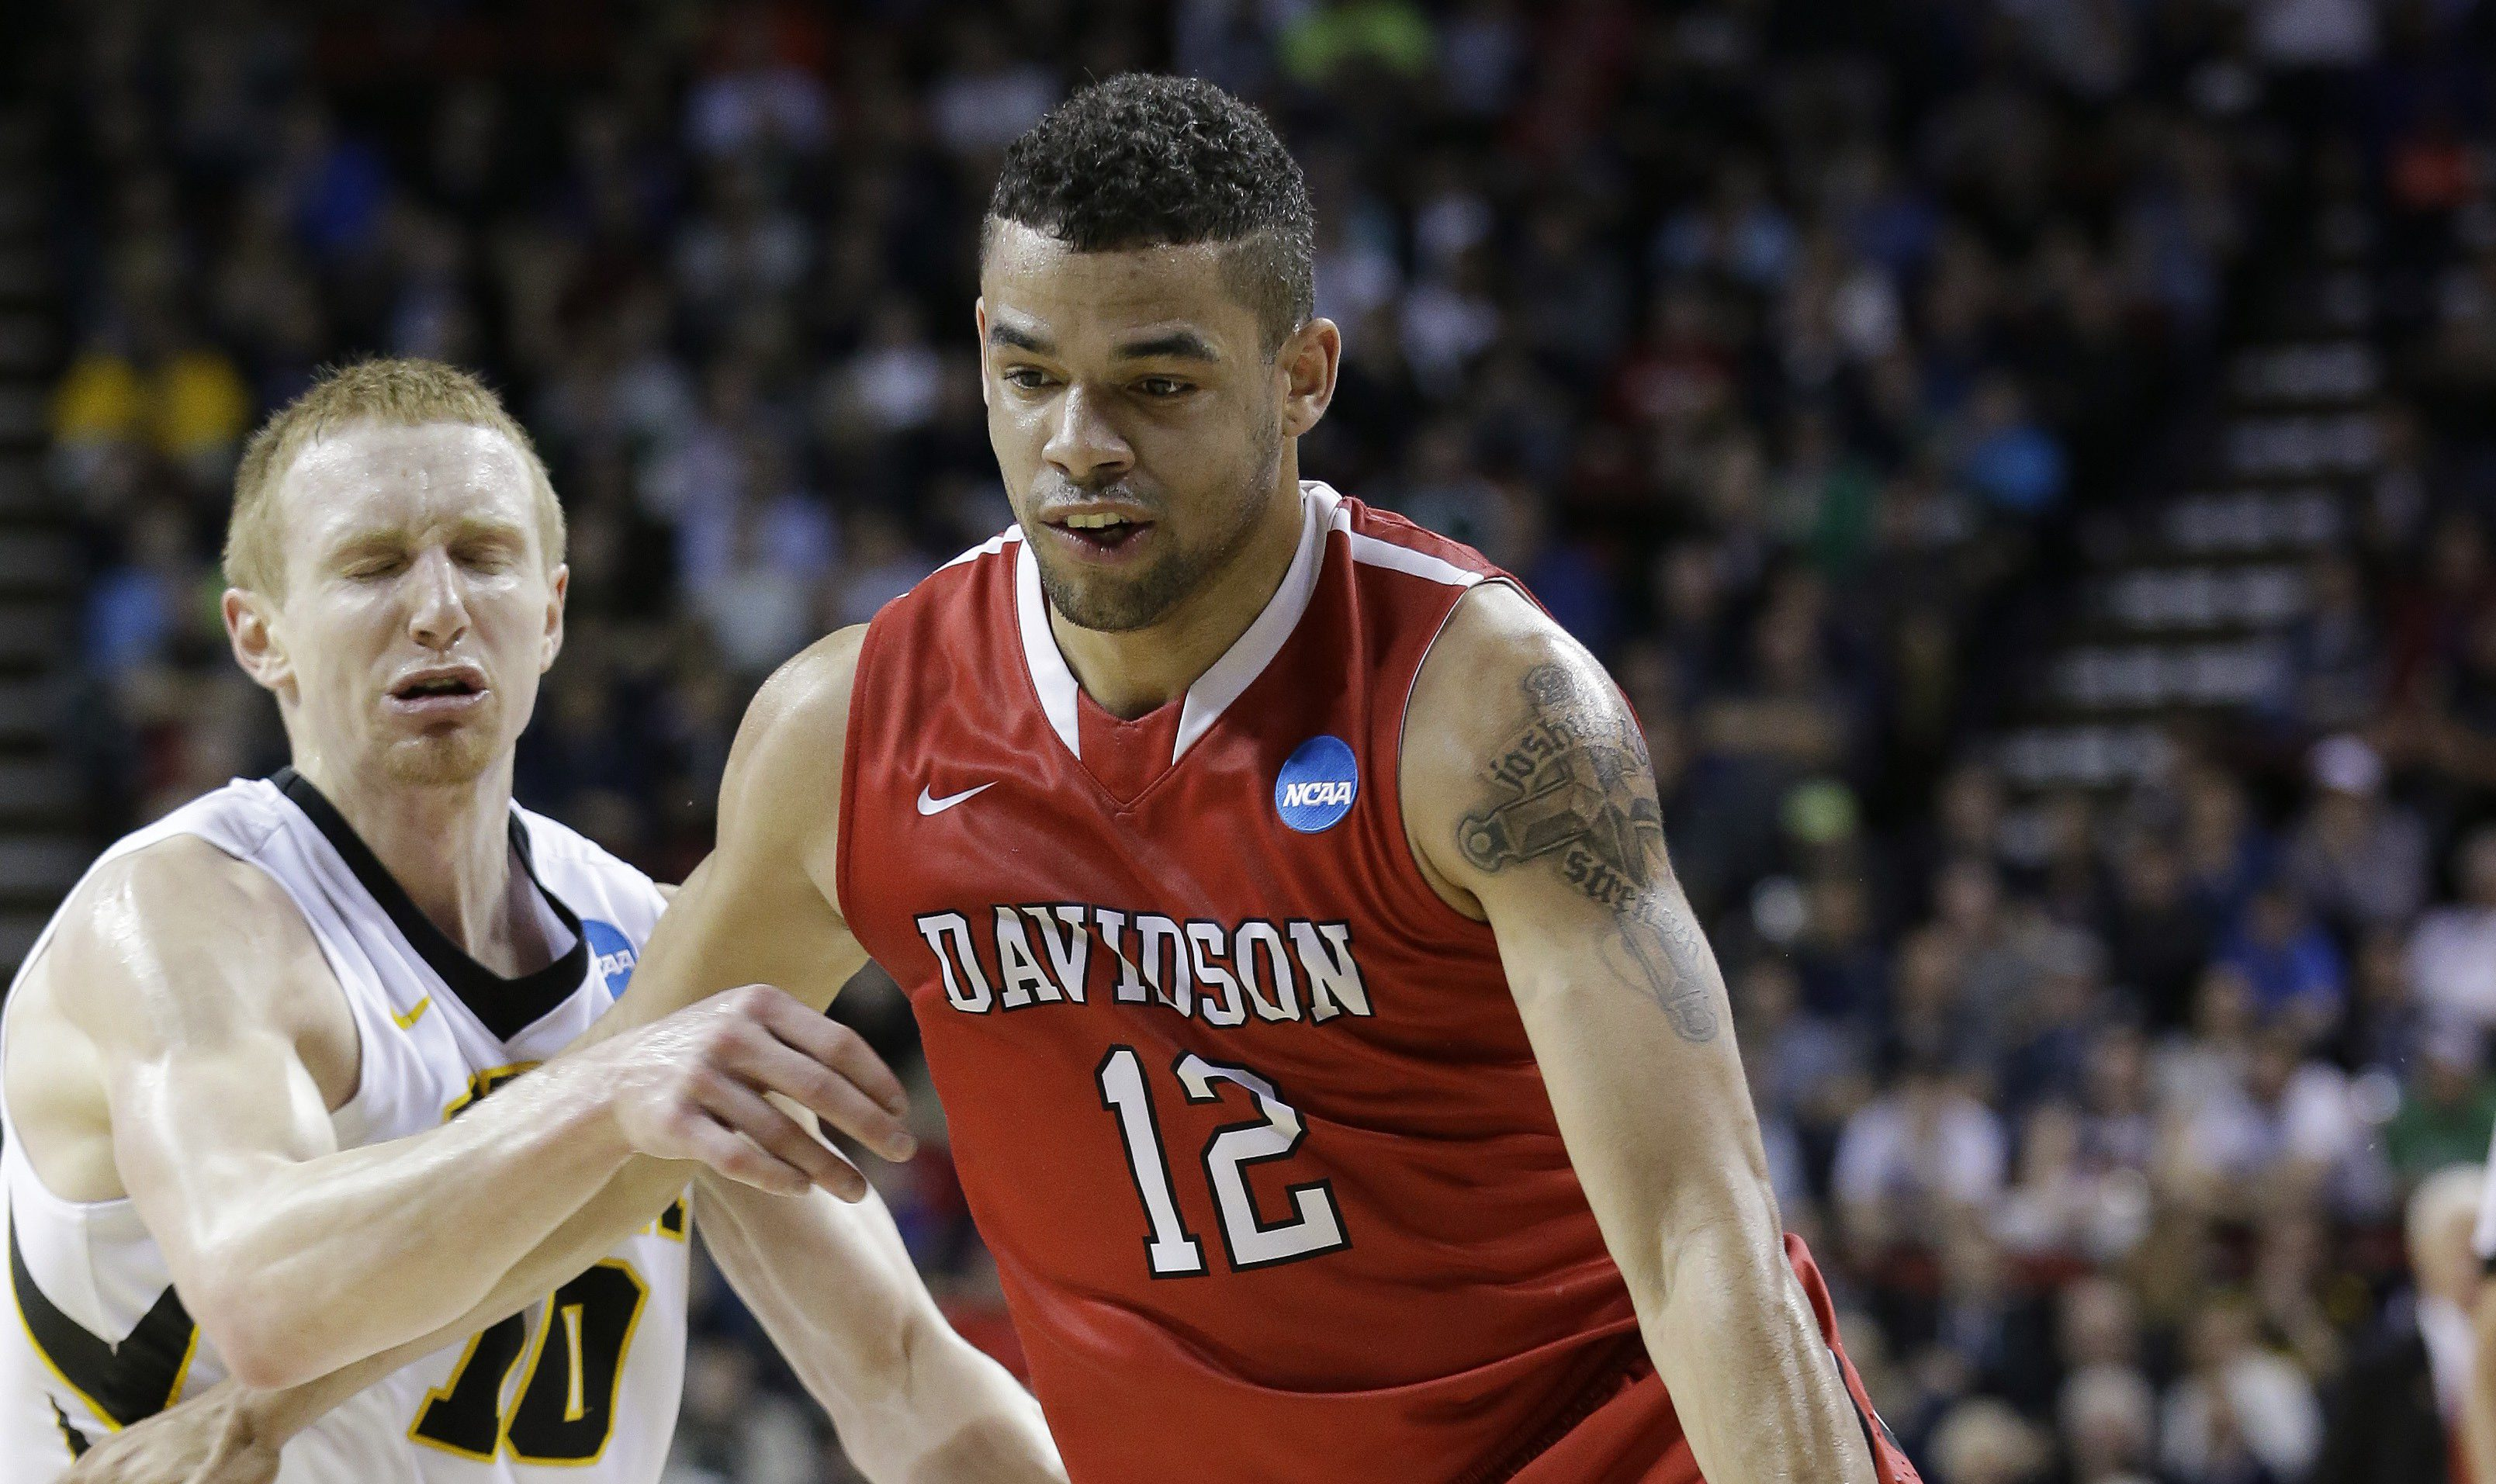 Davidson's Jack Gibbs (12) tries to drive past Iowa's Mike Gesell during the first half of an NCAA tournament college basketball game in the Round of 64 in Seattle, Friday, March 20, 2015. (AP Photo/Elaine Thompson)